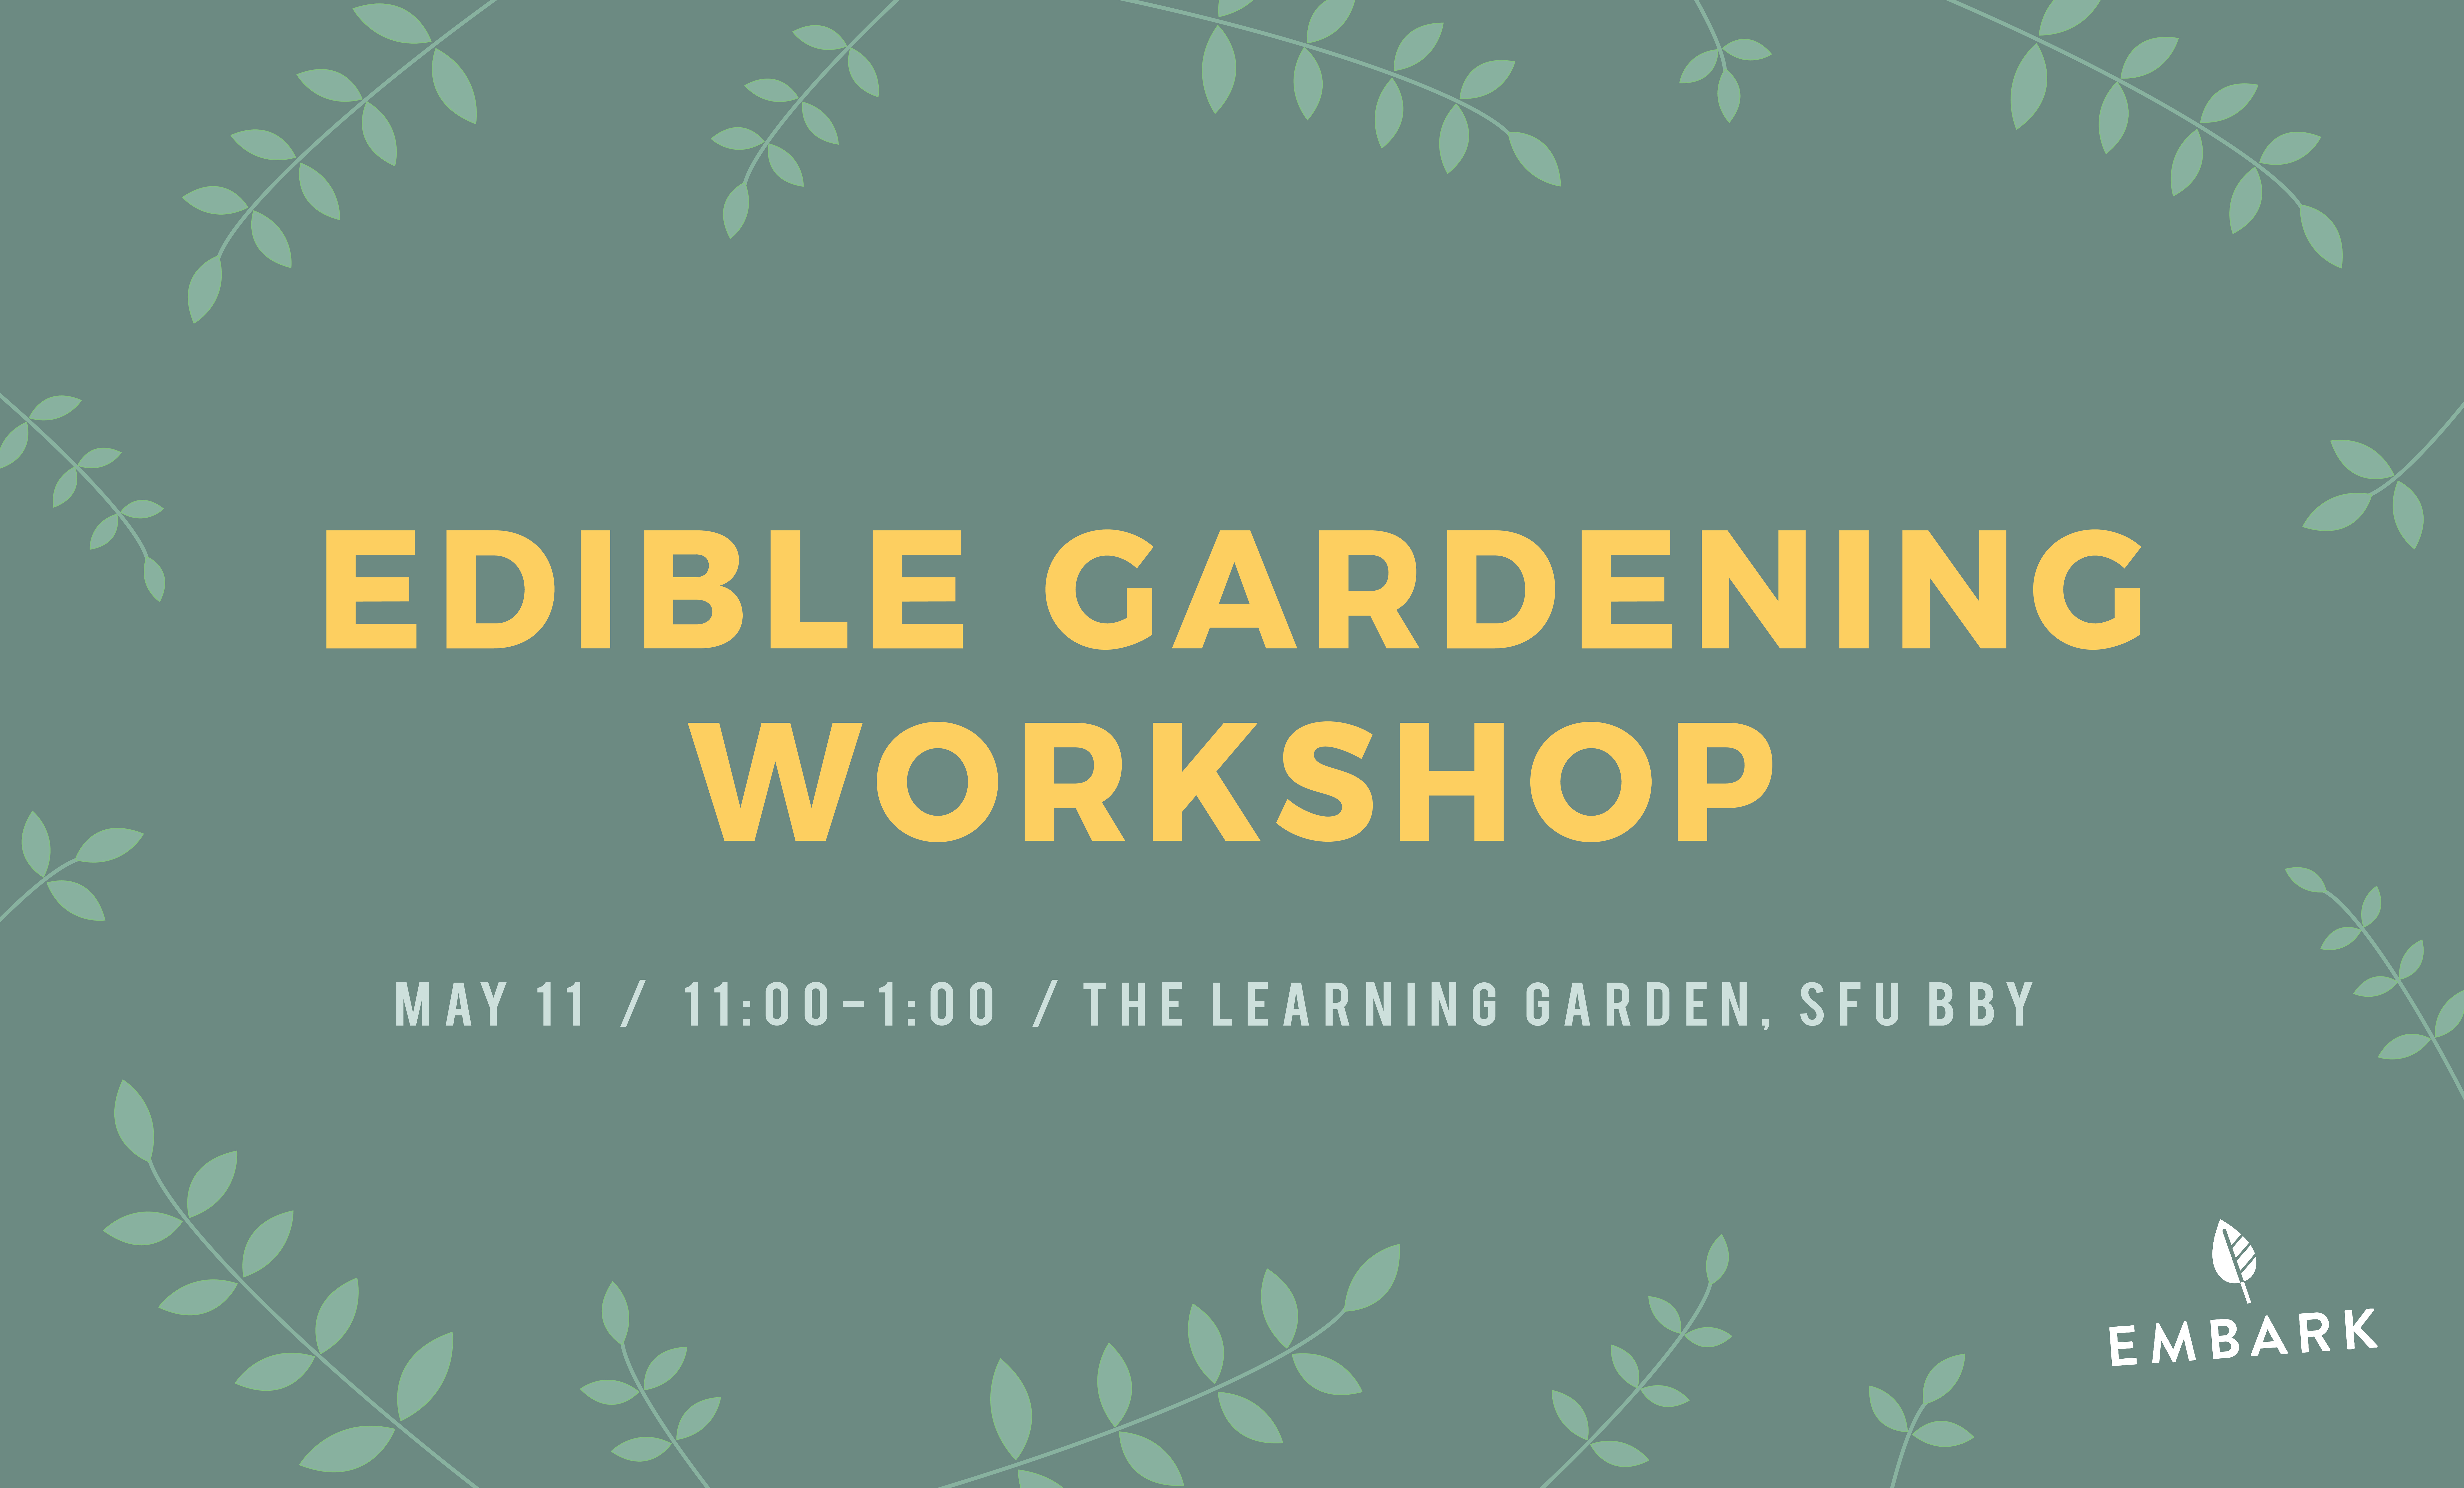 EdibleGardenWorkshop_SM_v2.jpg